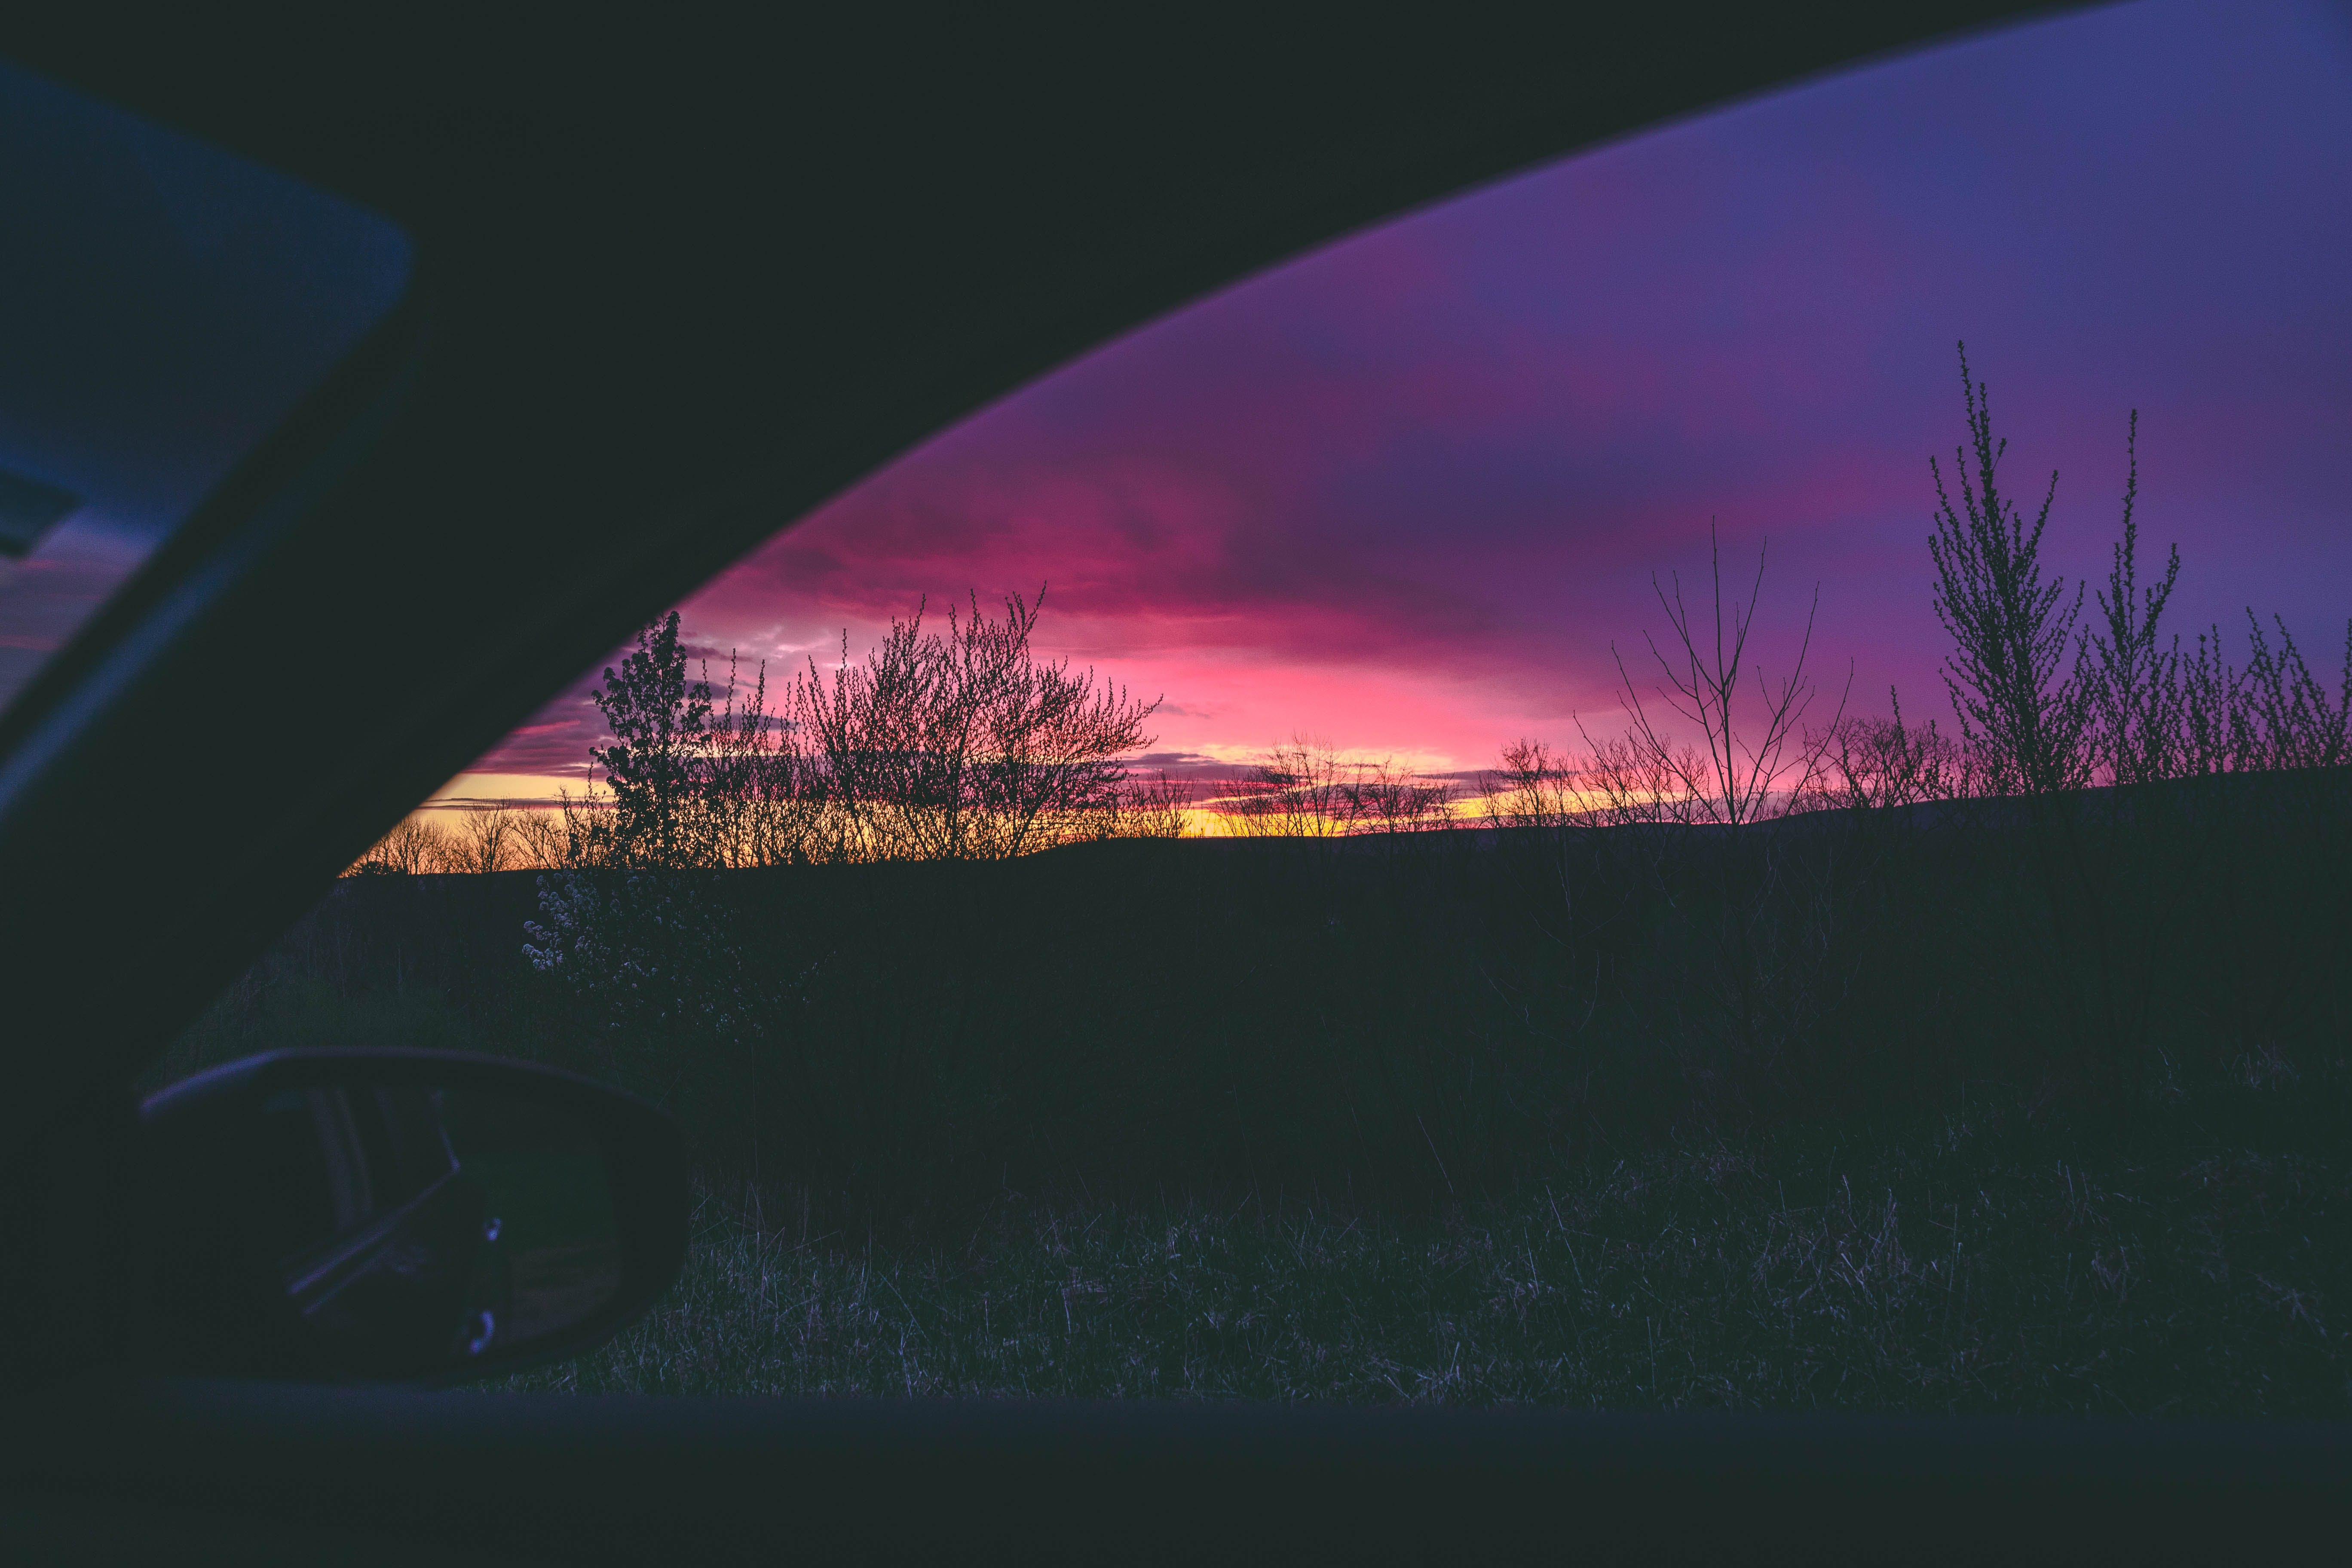 Person Inside Vehicle during Golden Hour